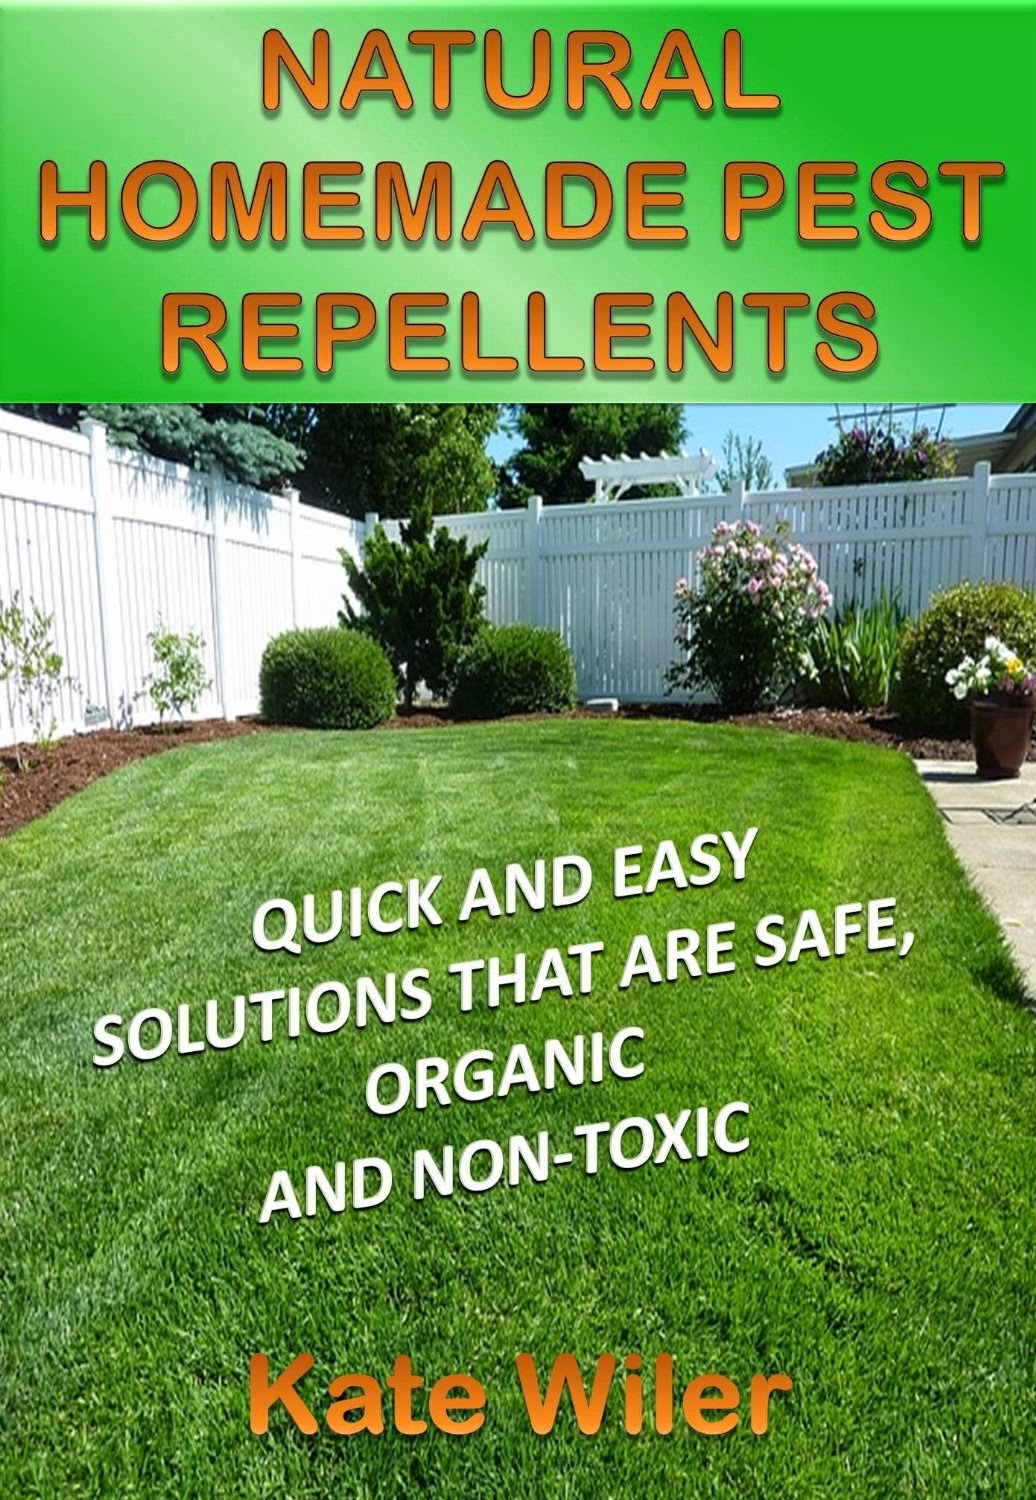 Review of NATURAL HOMEMADE PEST REPELLENTS by Kate Wiler